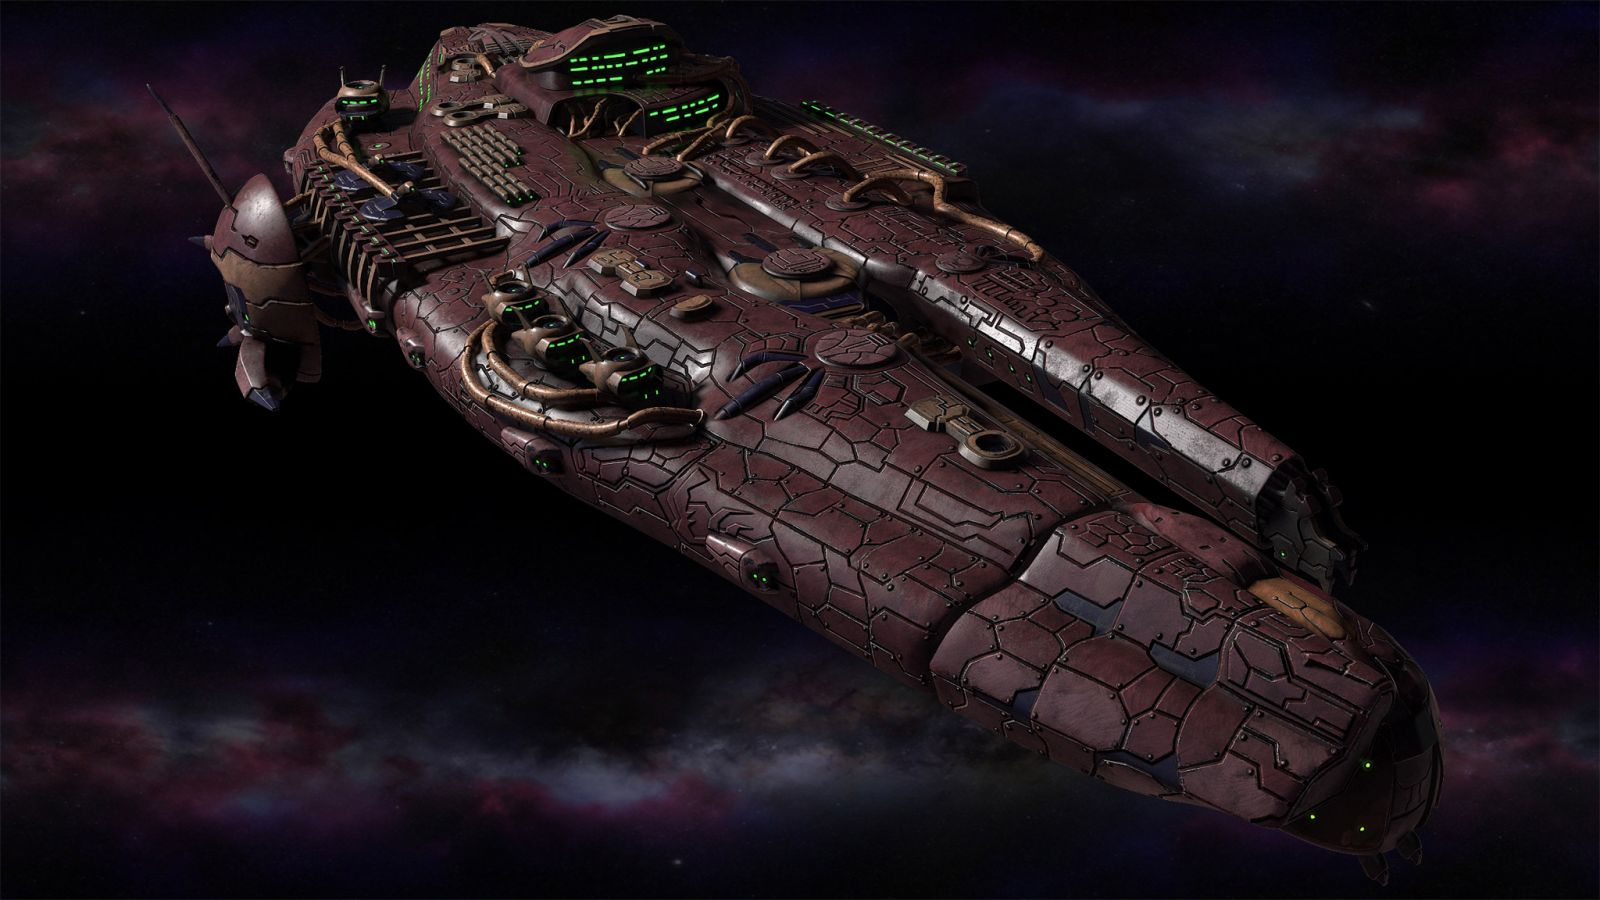 Polaris Sector game. Sharatars race. Destroyer